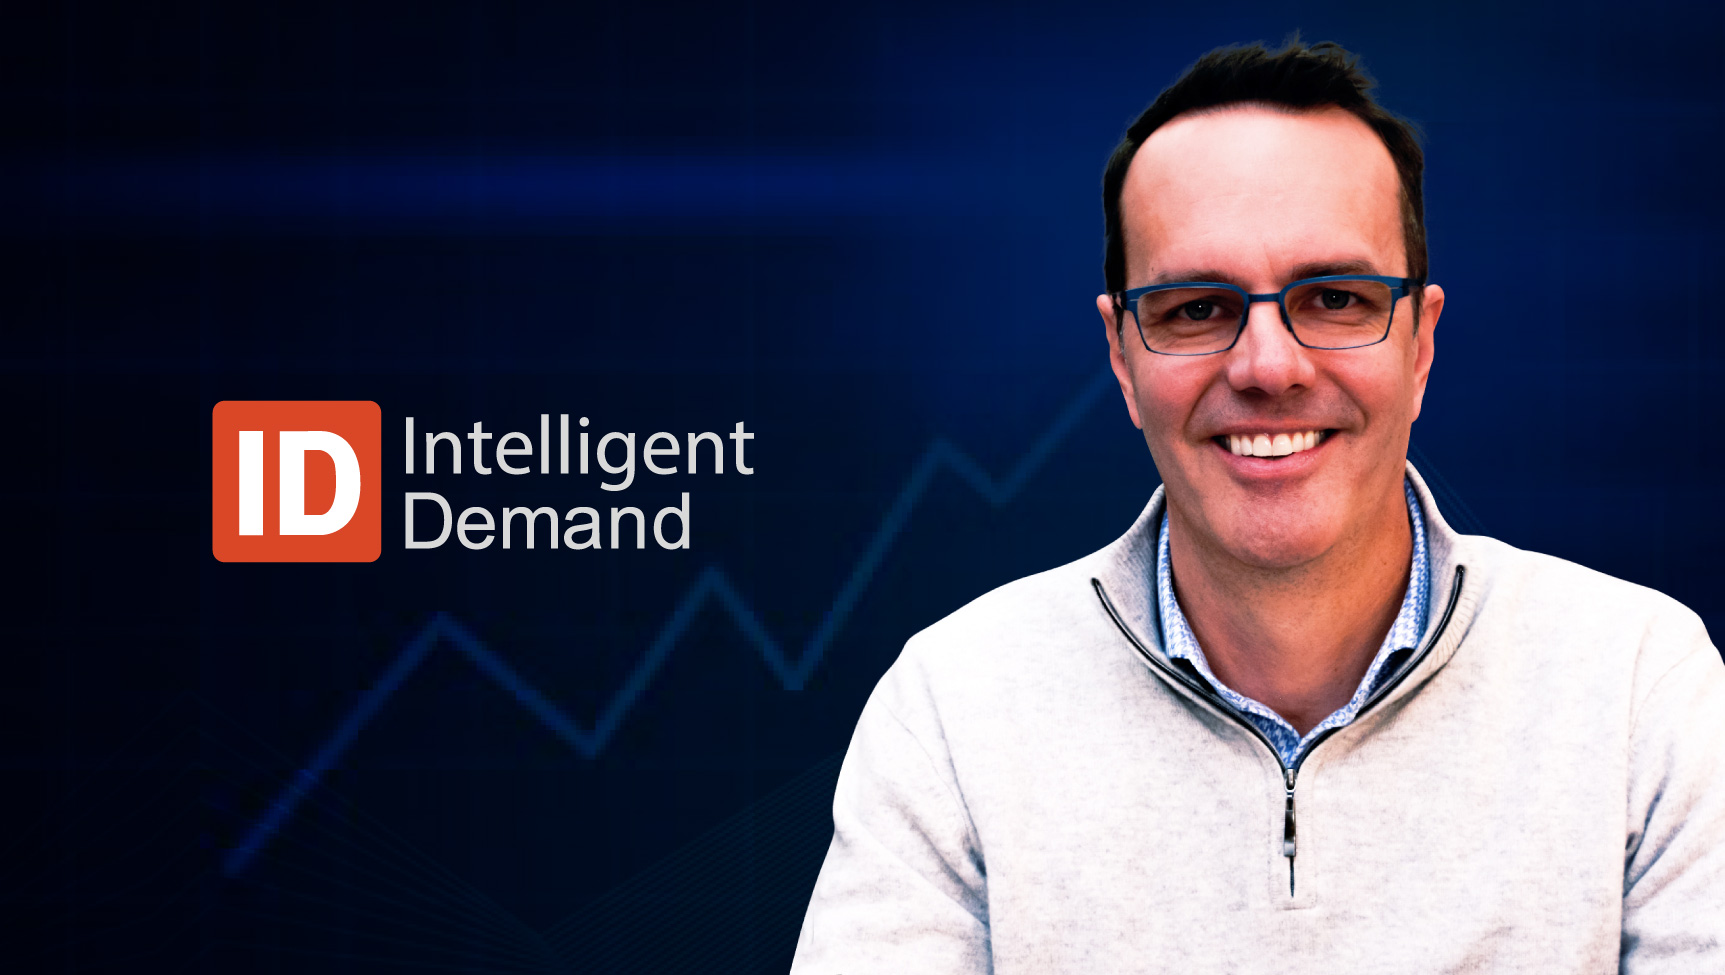 SalesTech Interview With John Arnold, VP of Marketing, Sales & Business Development at Intelligent Demand